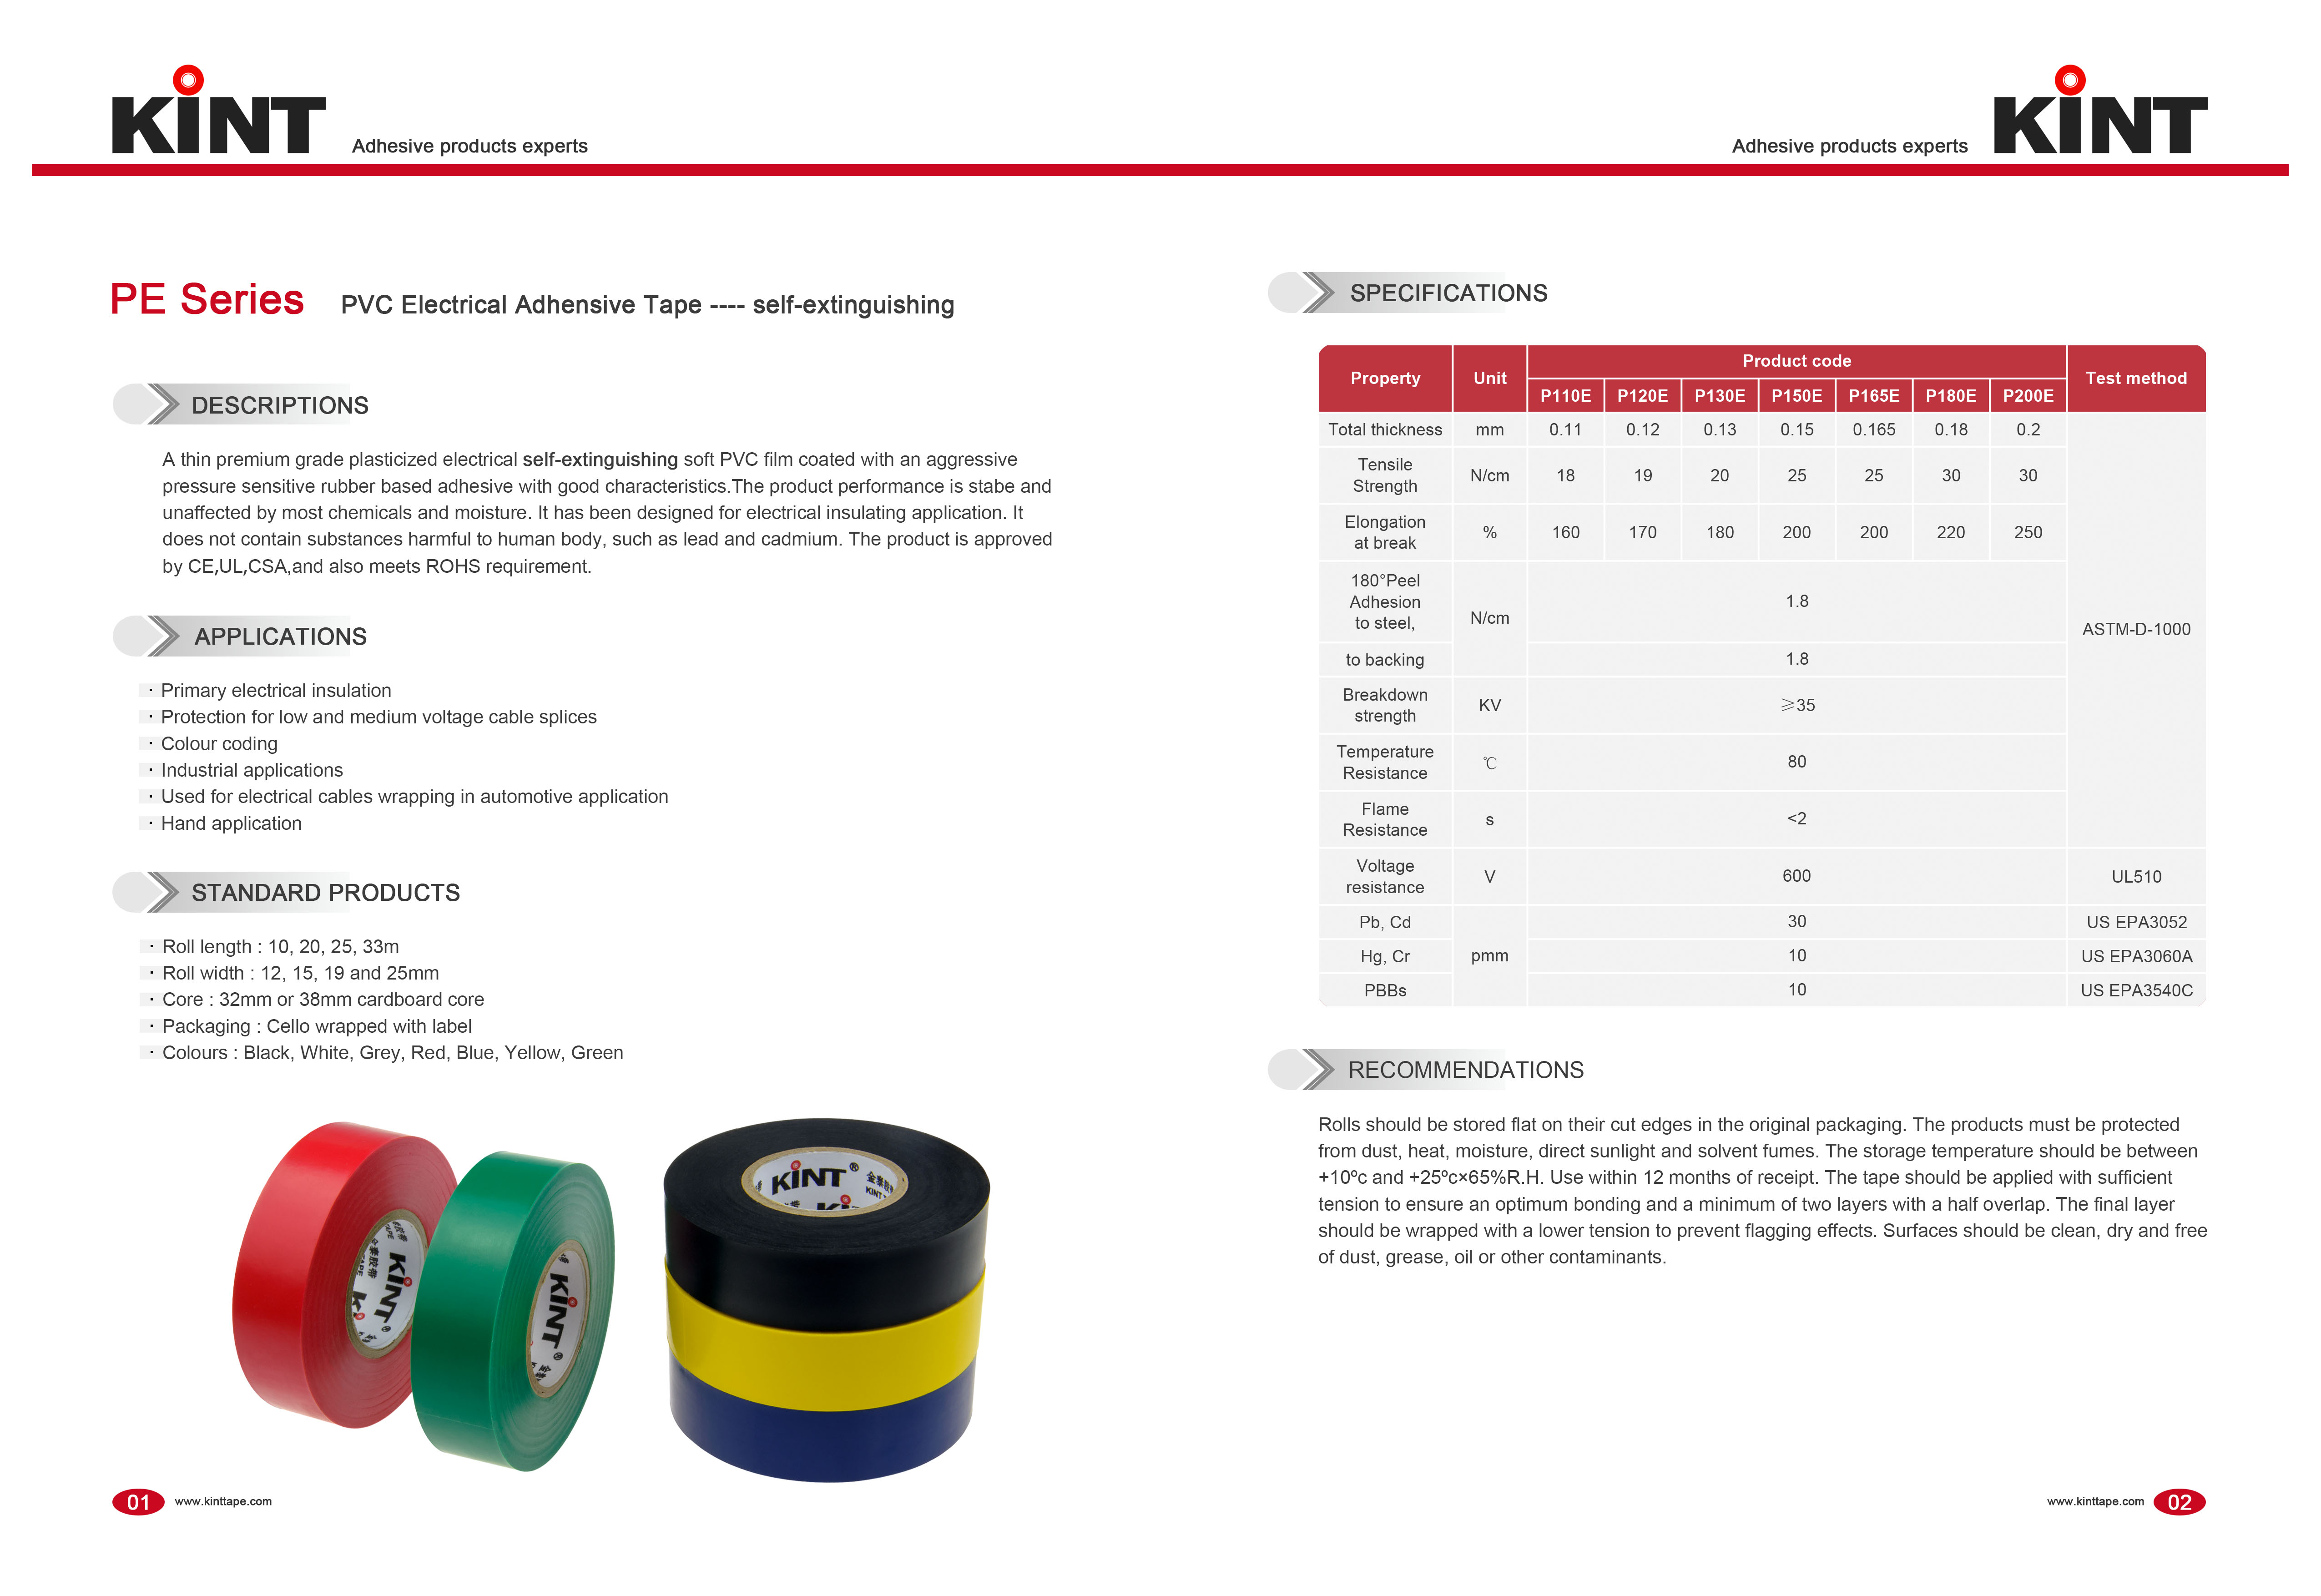 New pvc electrical tape adhensive factory for electrical insulating application